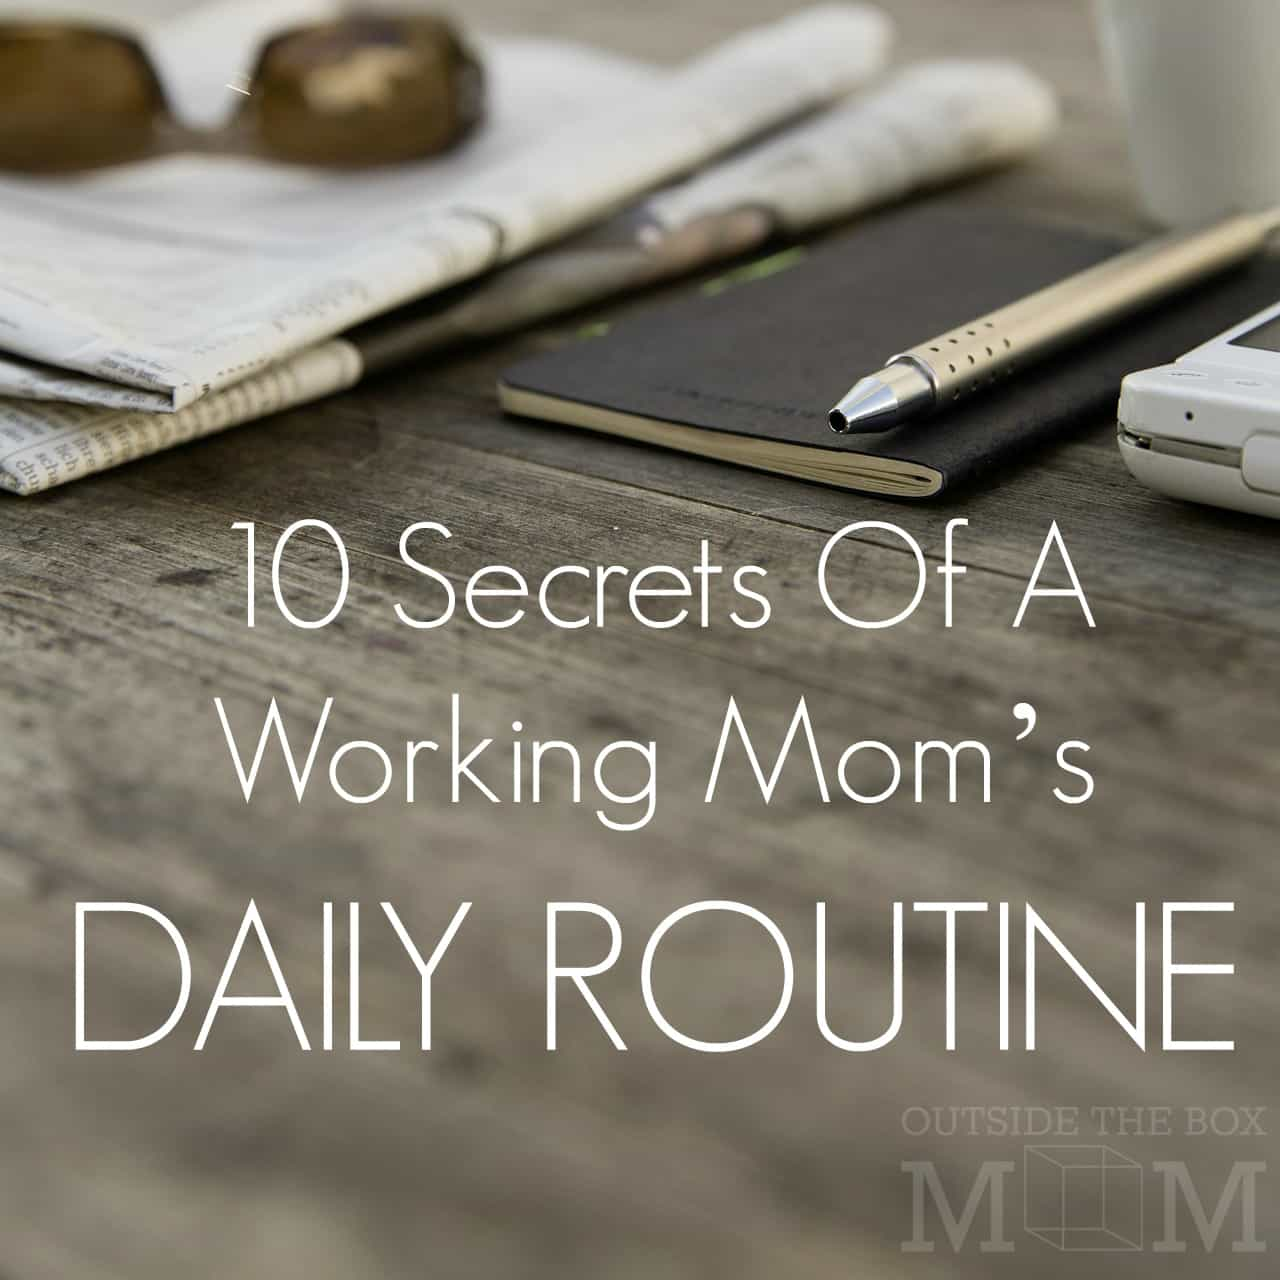 Working moms what does your daily schedule look like? I feel like I have zero time to get things done around the house during the week. Why didn't I ever think of this solution?